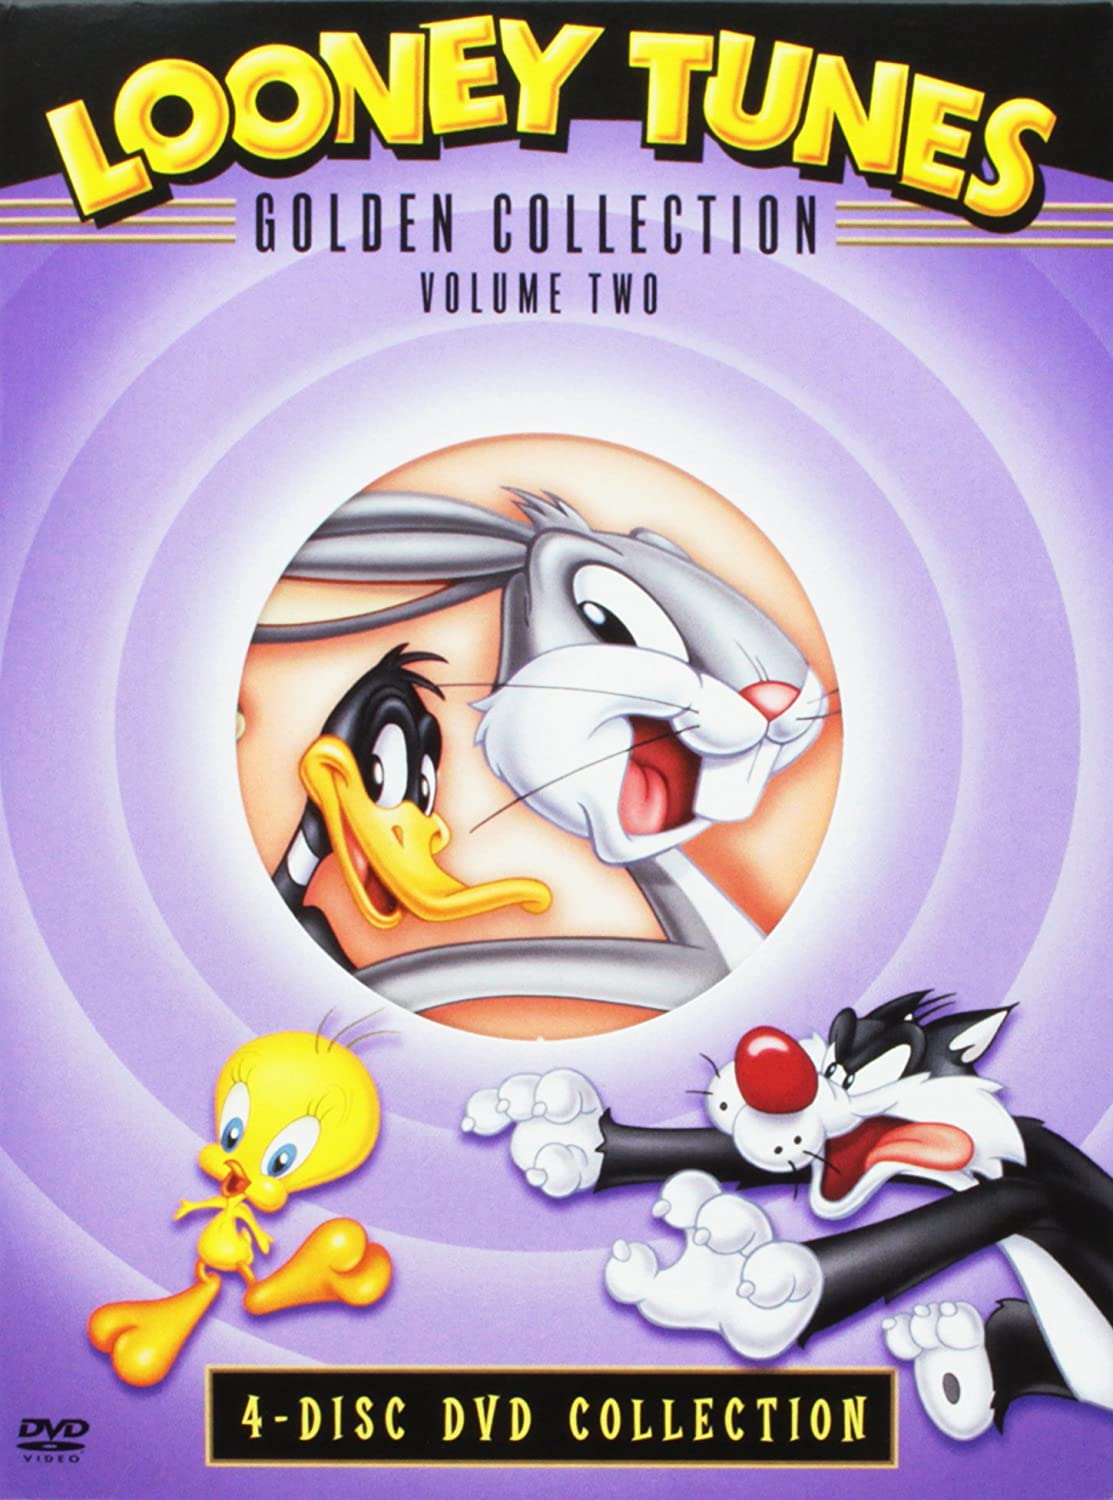 Looney Tunes Golden Collection: Volume Two